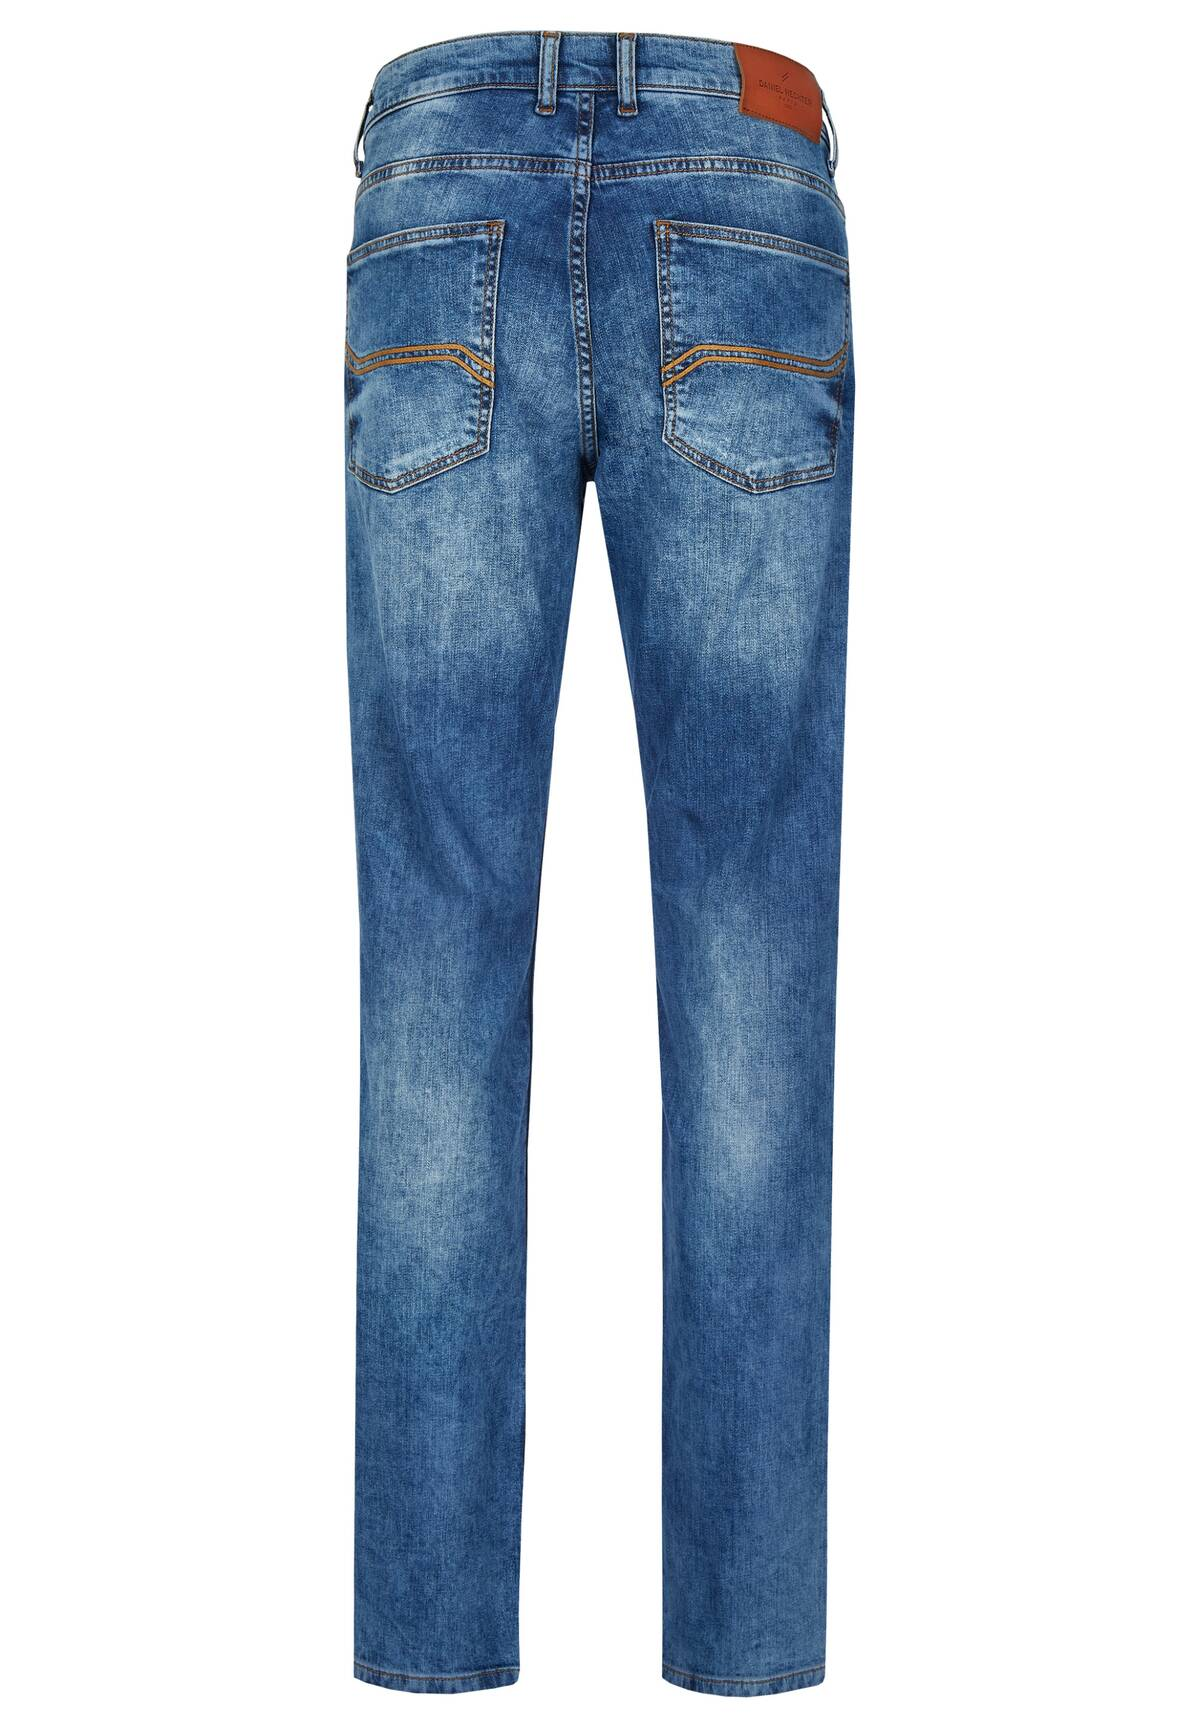 Jeans 5 poches coupe droite /